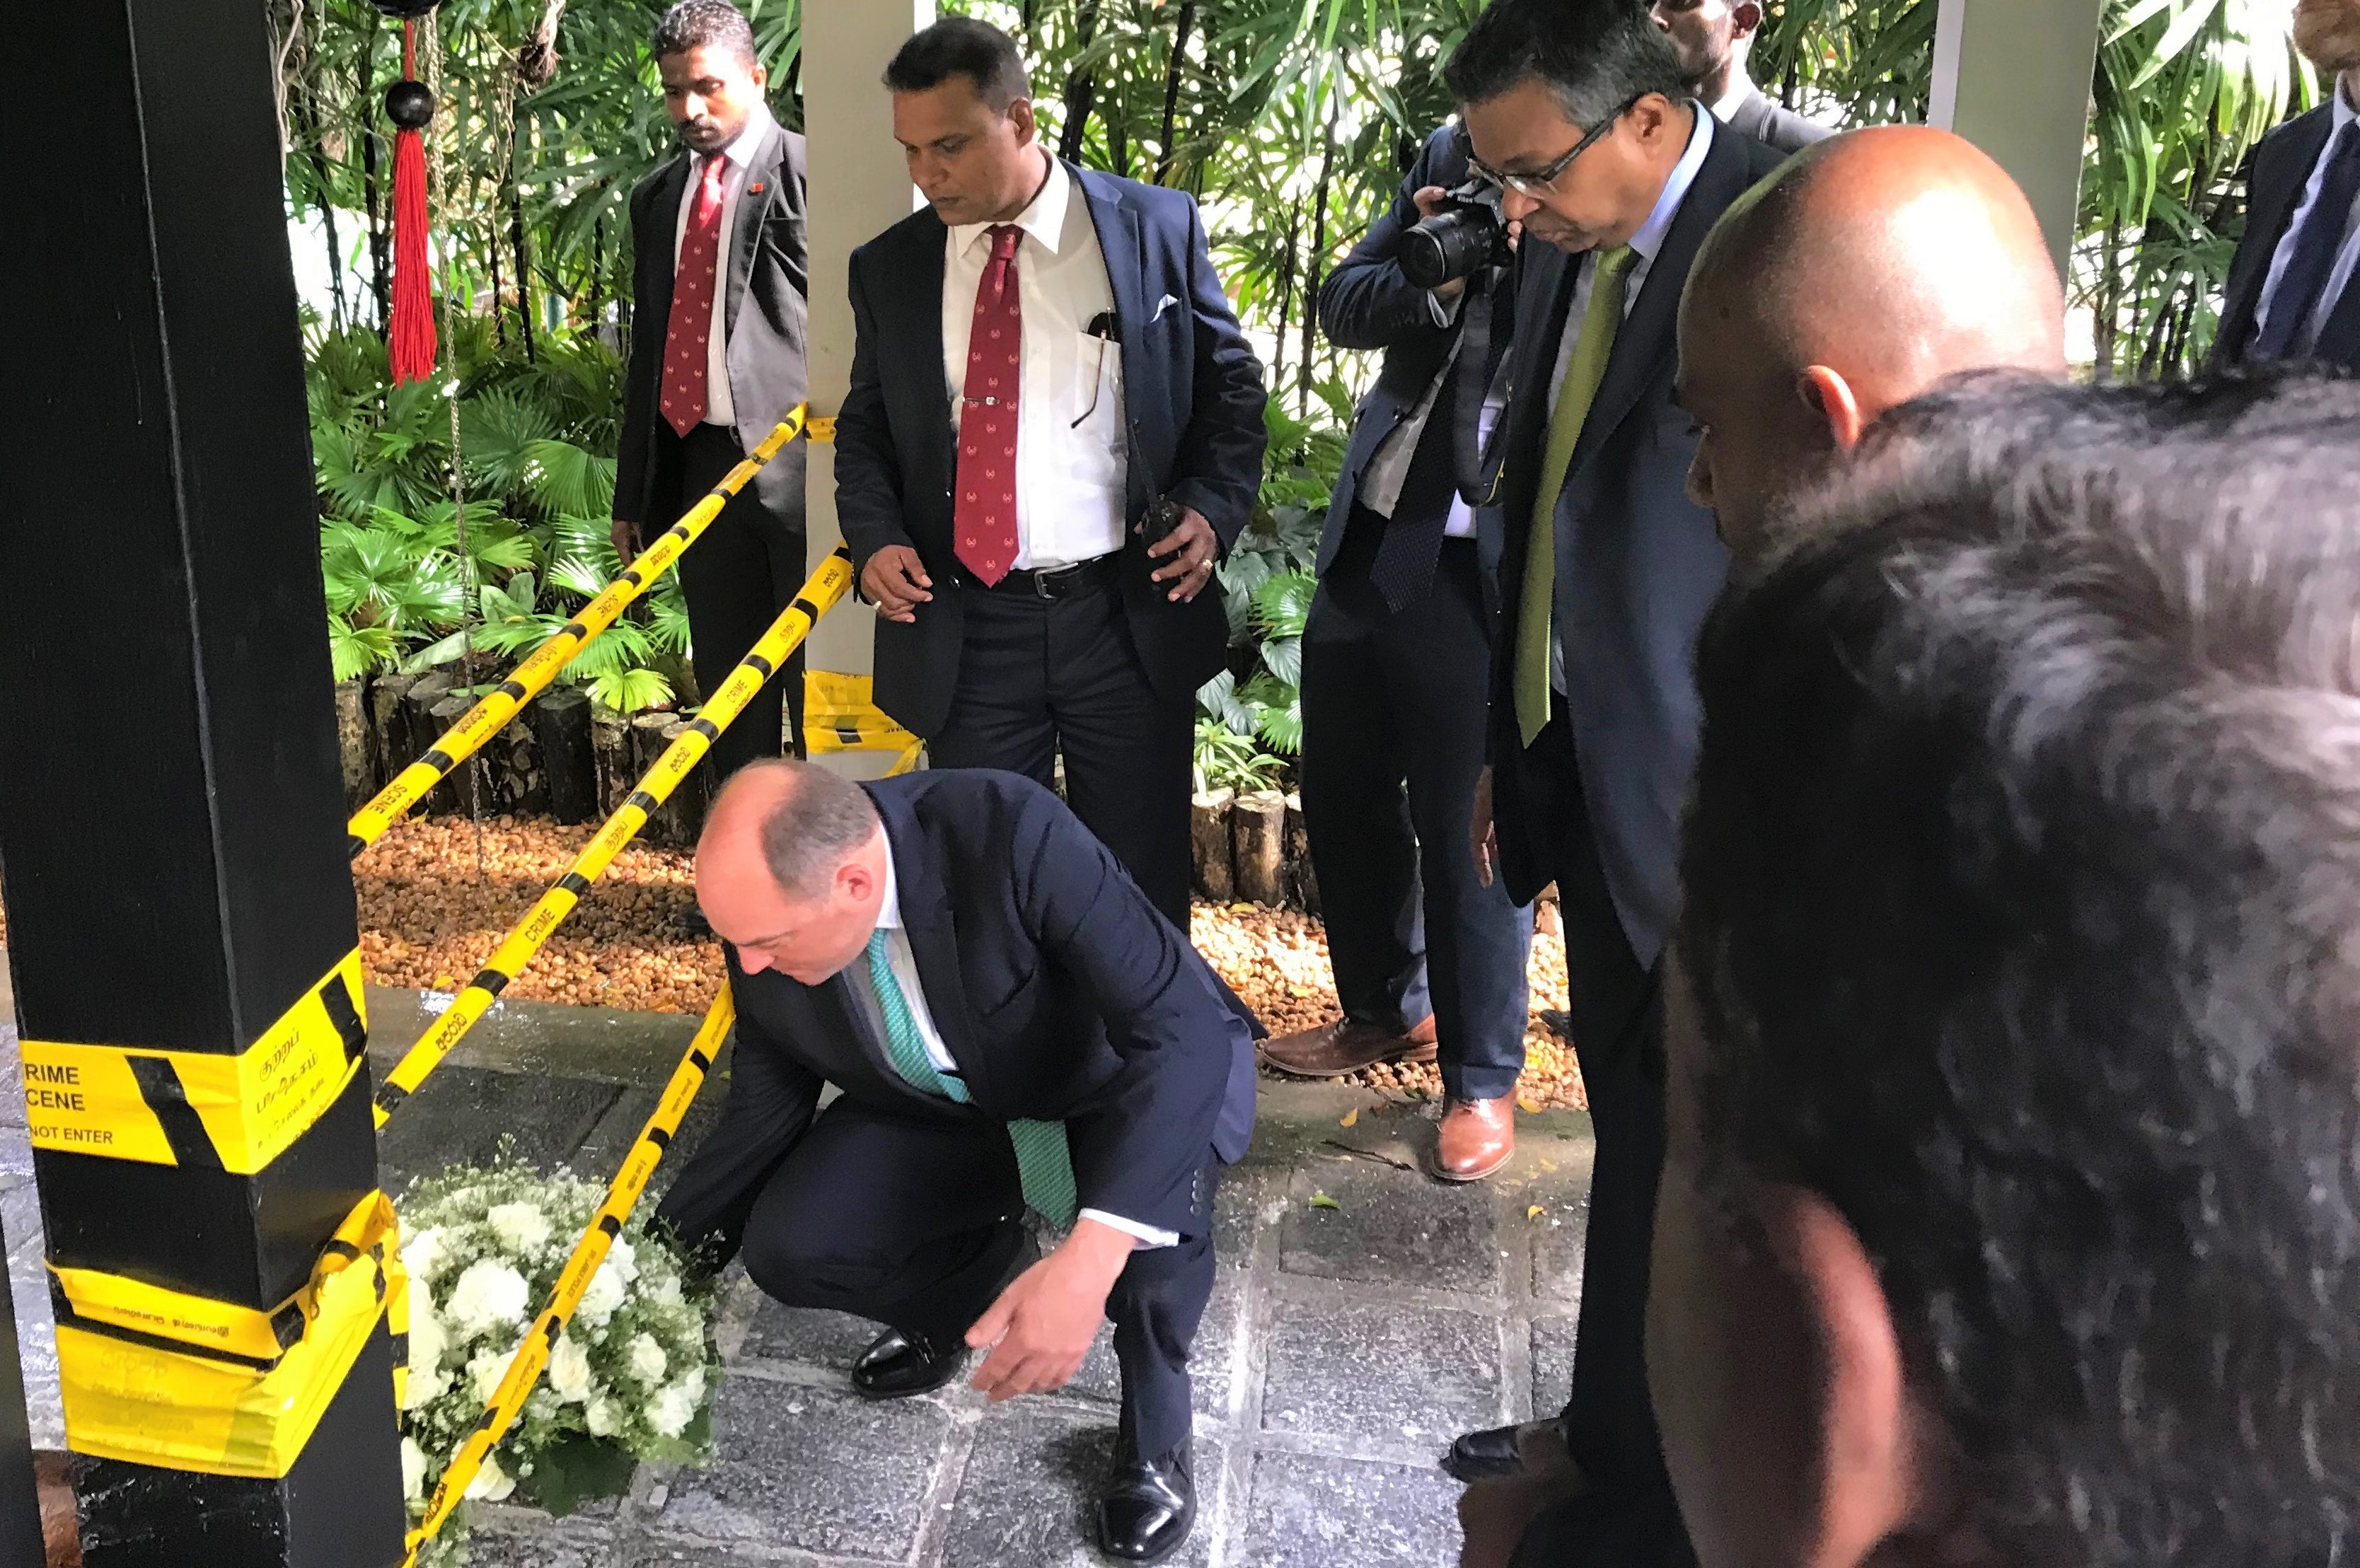 Security Minister, Ben Wallace, lays a wreath on the ground with several people watching.